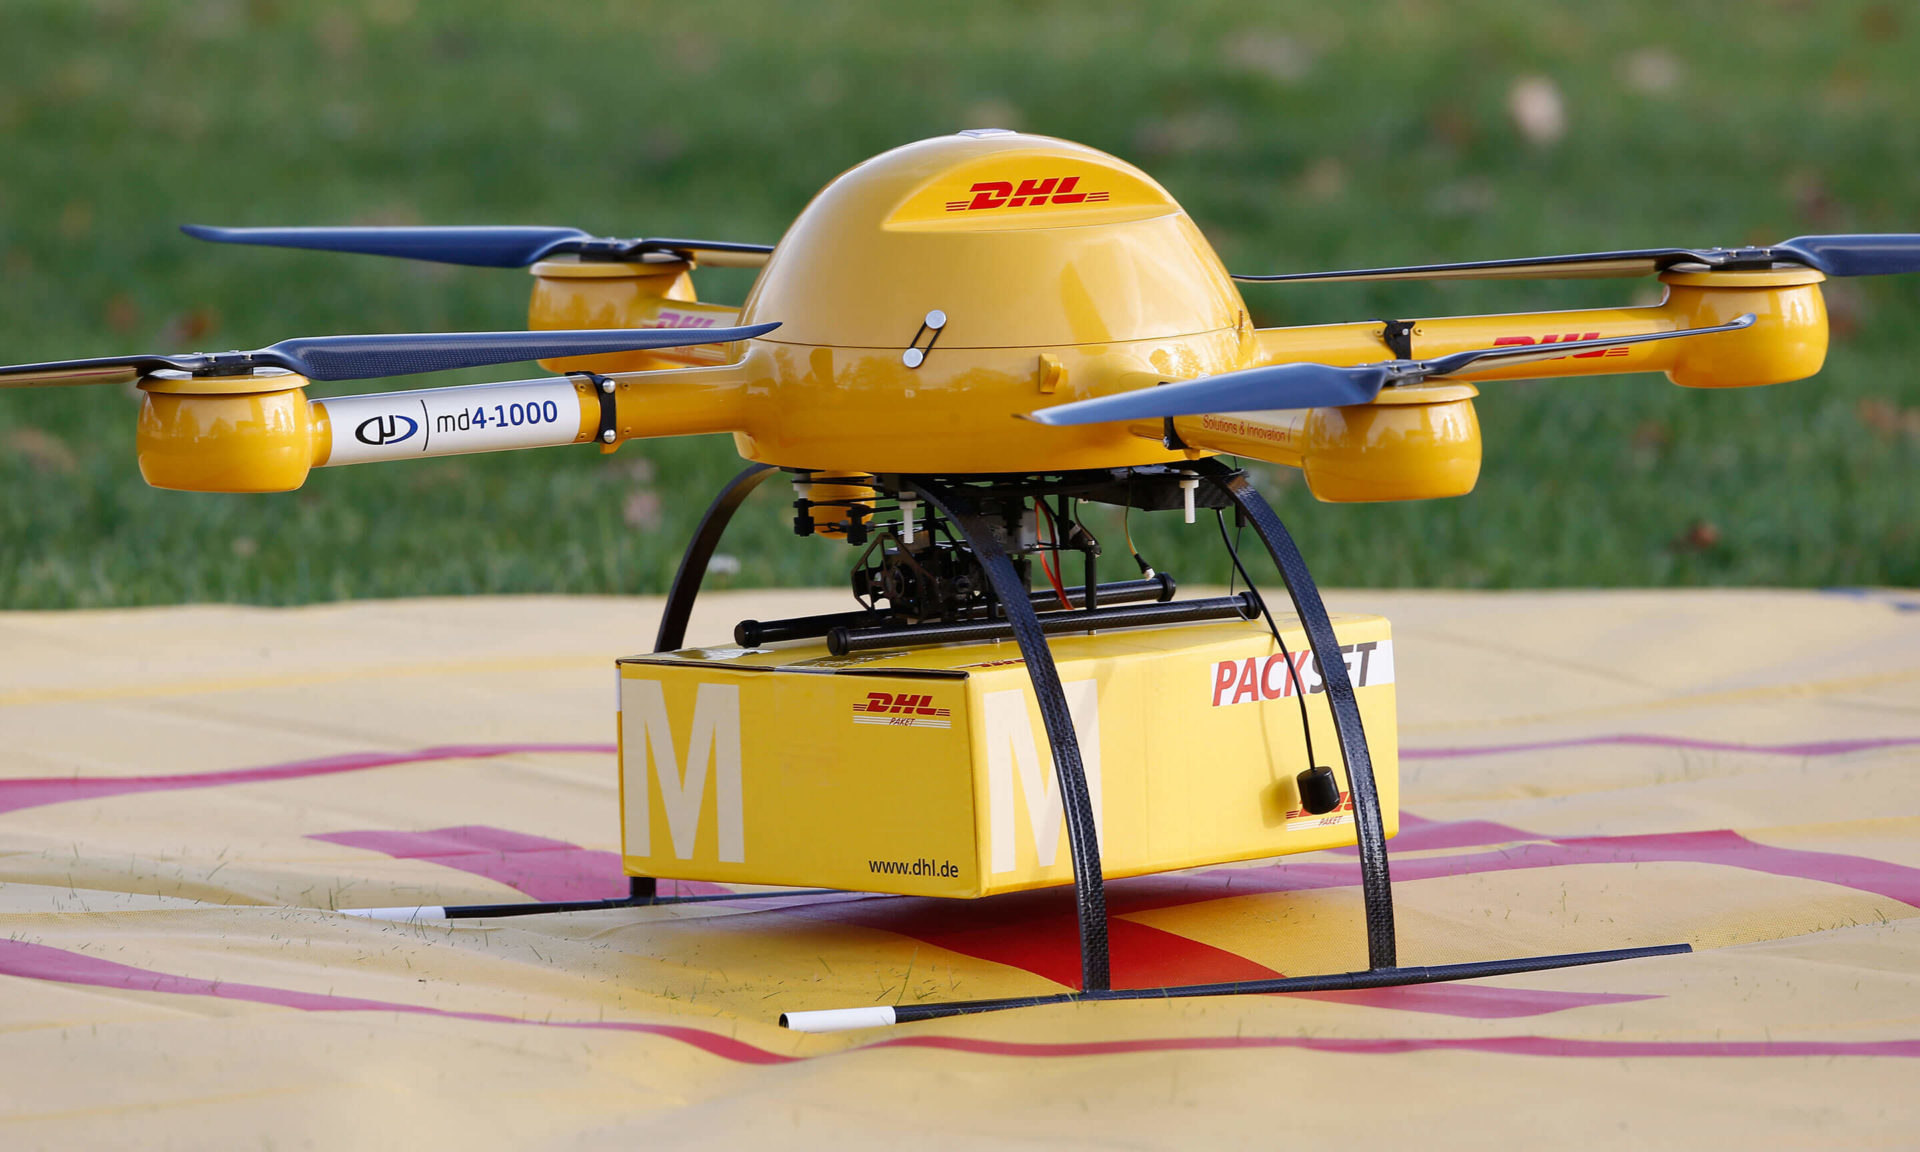 who makes drones for amazon with Drone Sanity Is Happening Around The World on Buy Drone Drone Price Used Drones For Sale Best Drones Remote Control Drone additionally Attach Iphone To Drone besides Drones For Sale Quadcopter Remote Control Drone Flying Camera Drone Buy Drone also 4 moreover 20272.